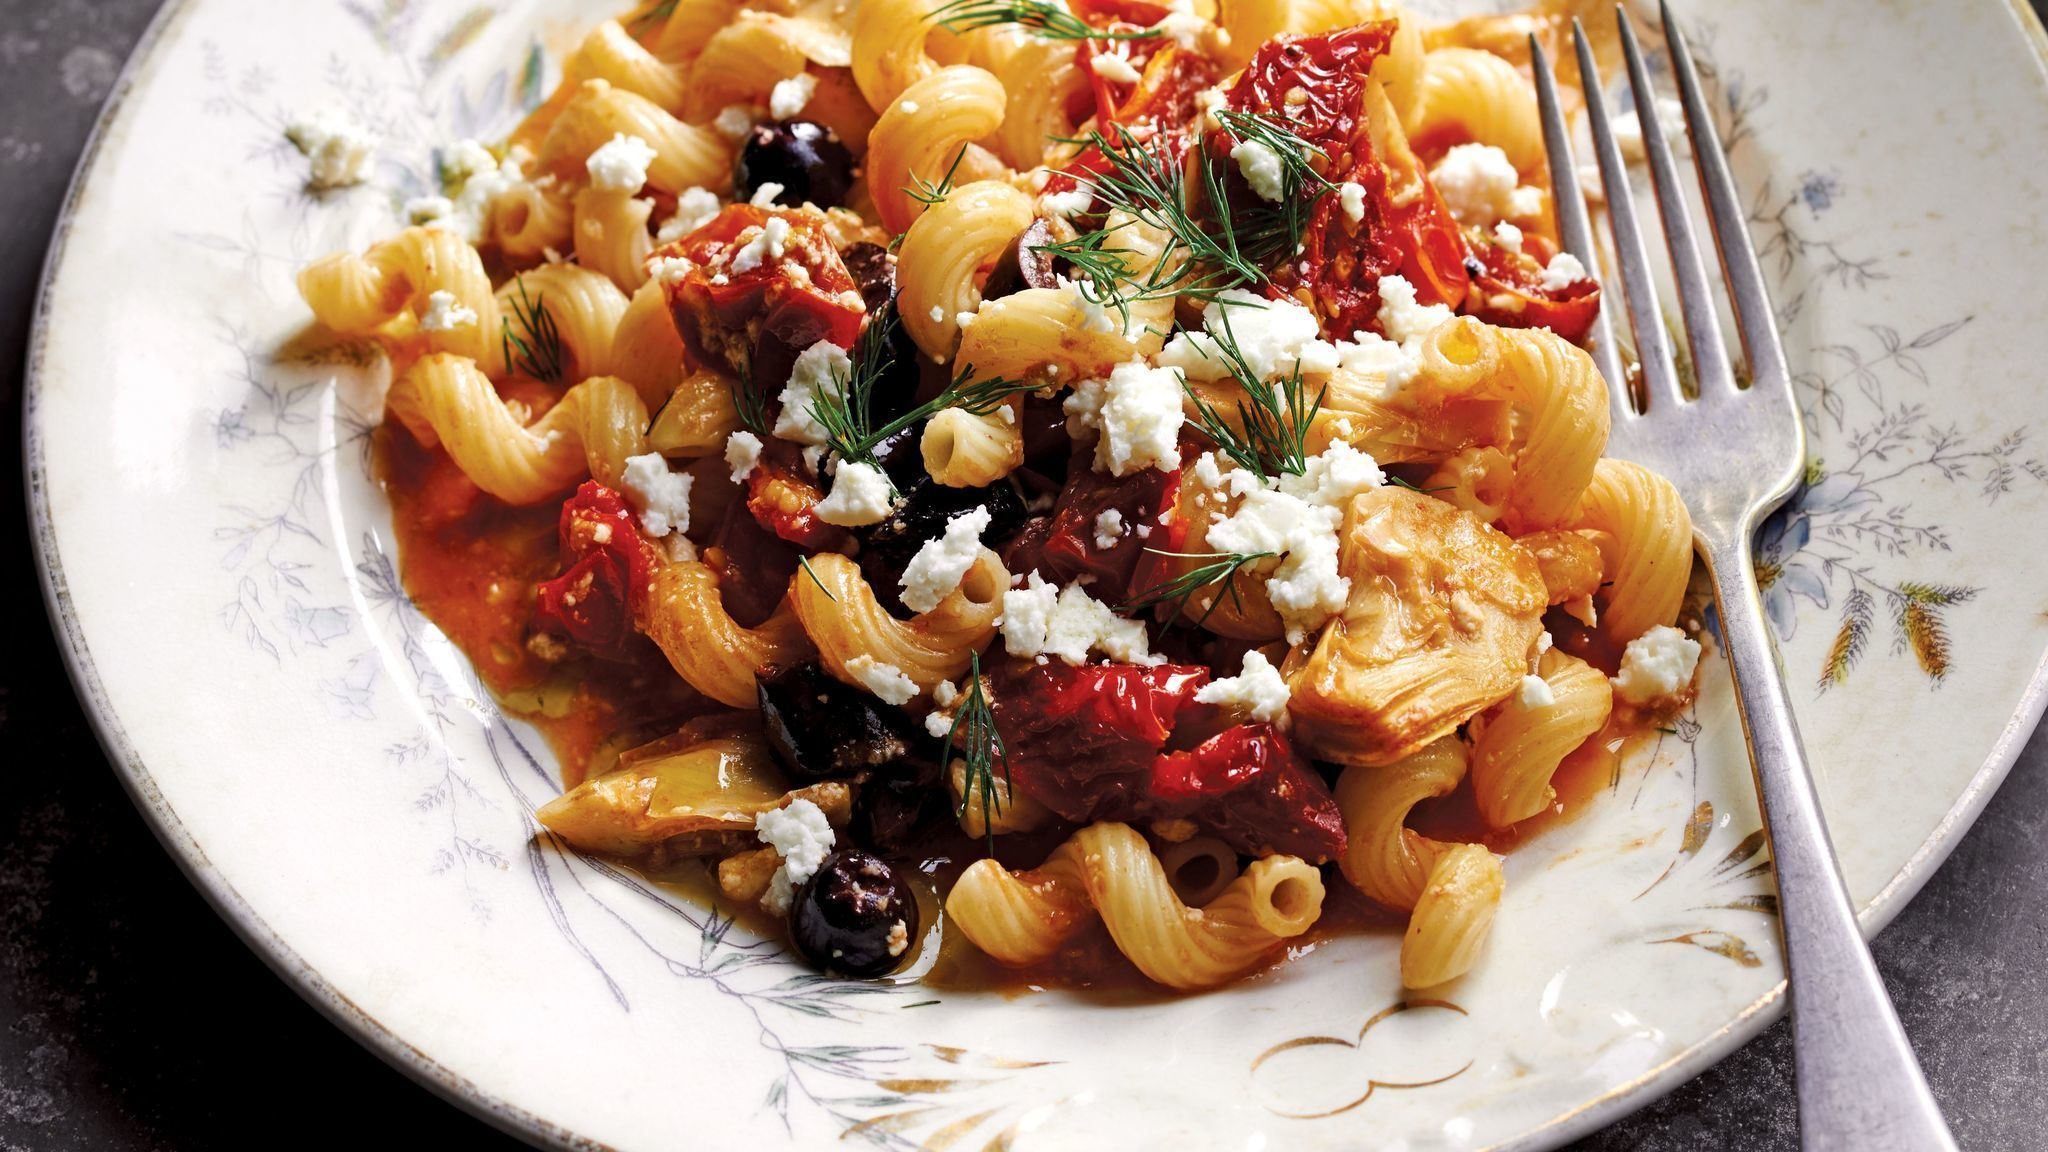 Cavatappi pasta's curves perfect for soaking up sauce - The San ...